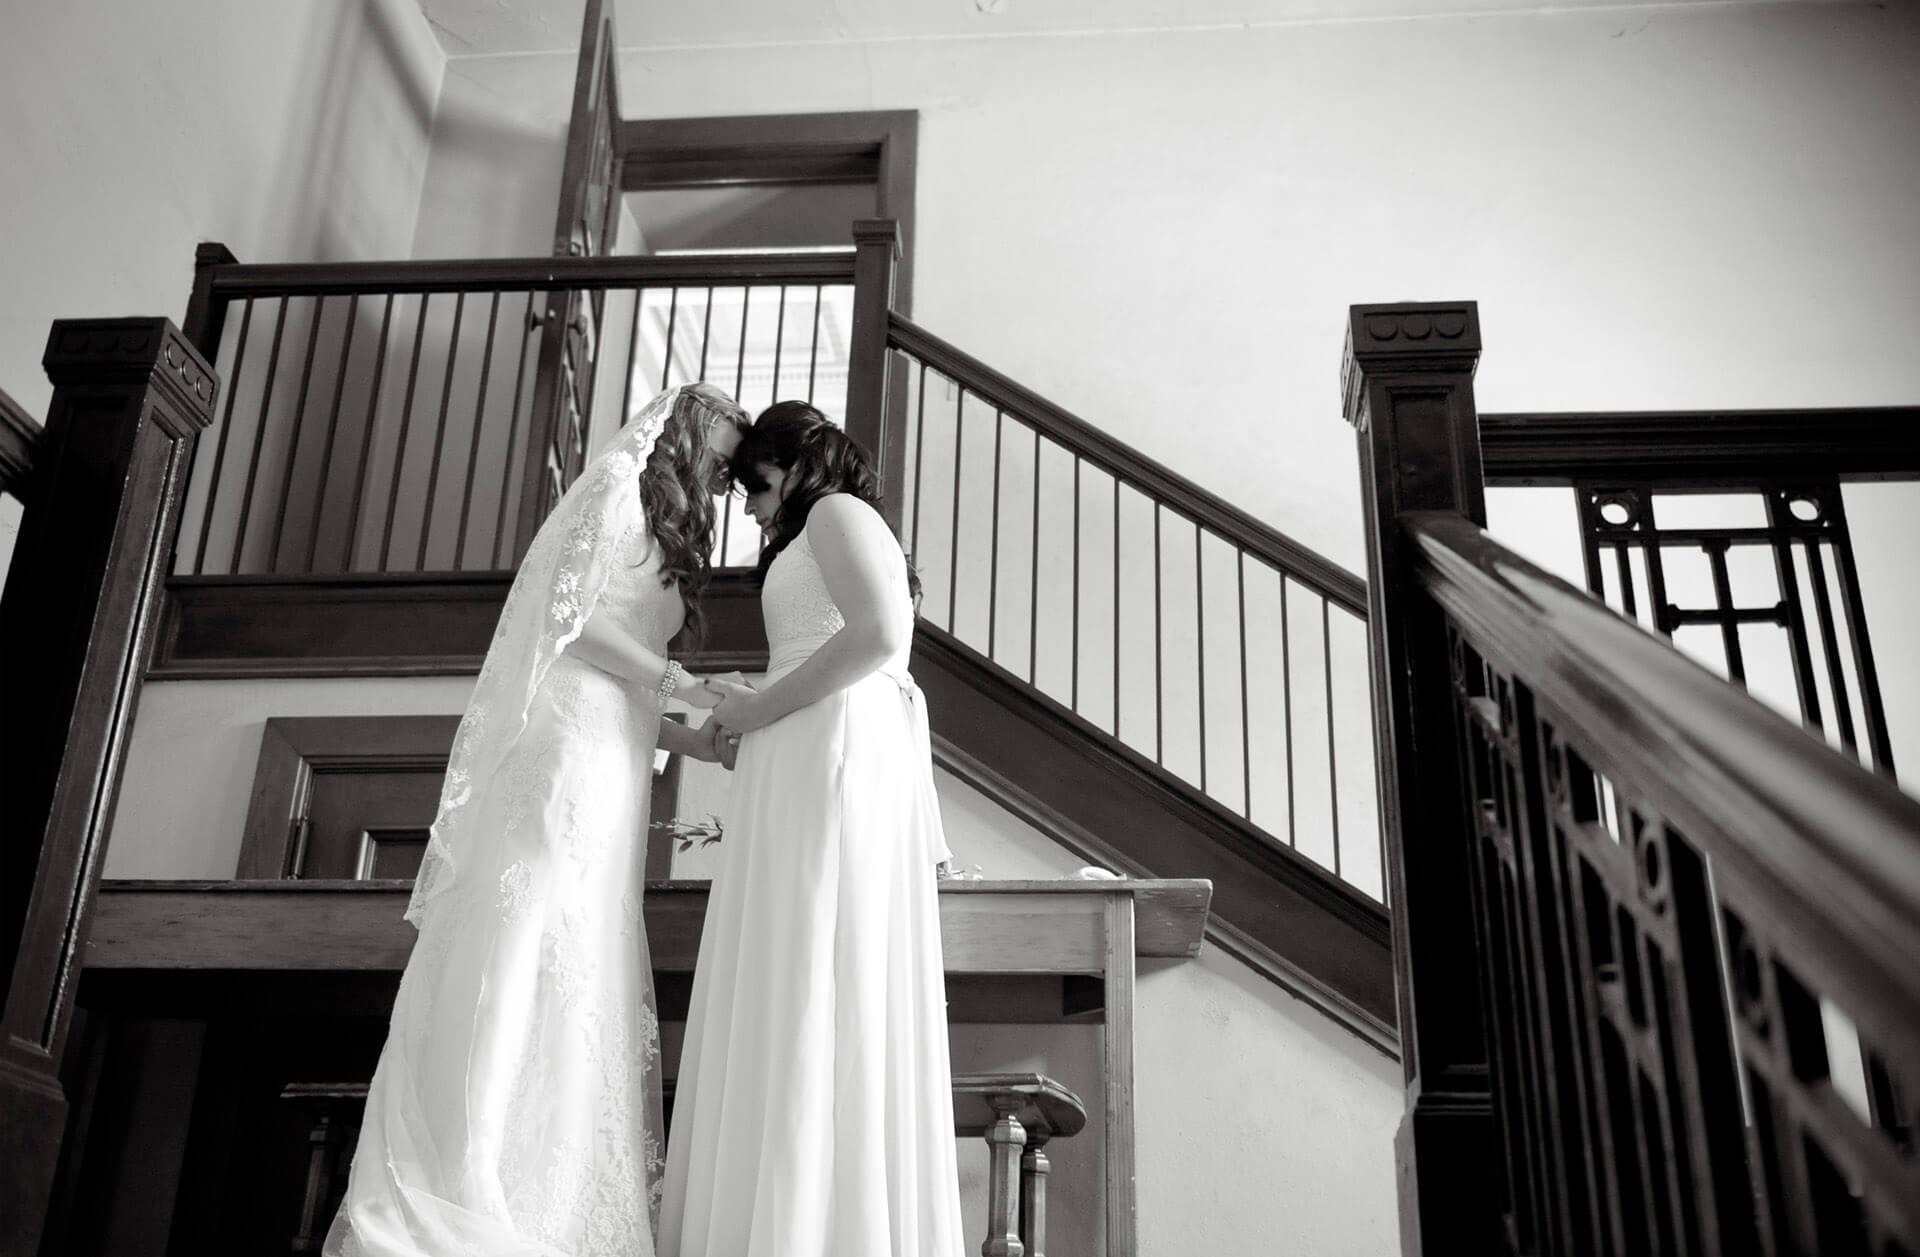 The maid of honor bows her head along with the bride in prayer just before she heads down the aisle in the photojournalist style of wedding photography taken by best, most affordable Michigan wedding photographer, Marci Curtis.